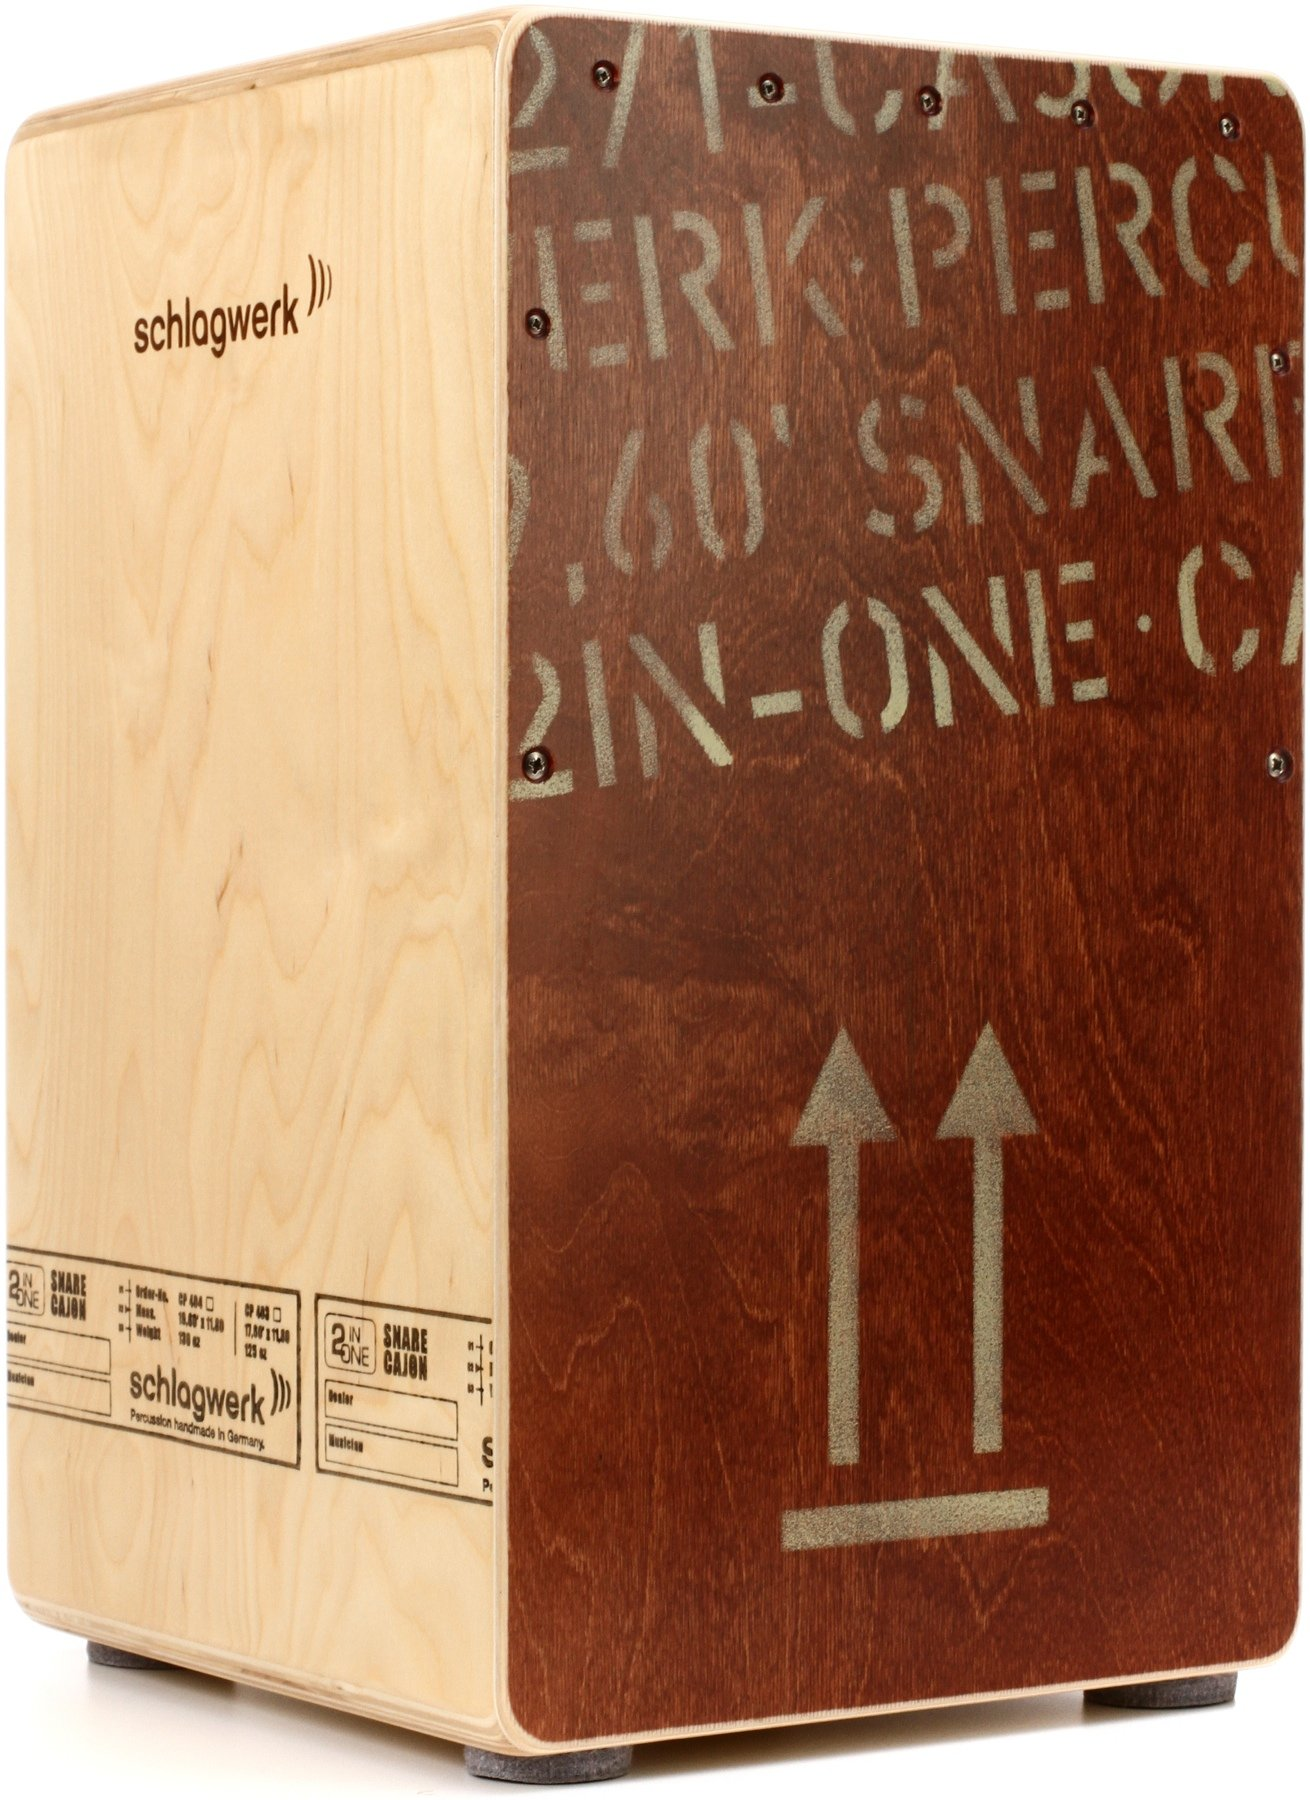 Schlagwerk CP403RED 2inOne Cajon Red Edition